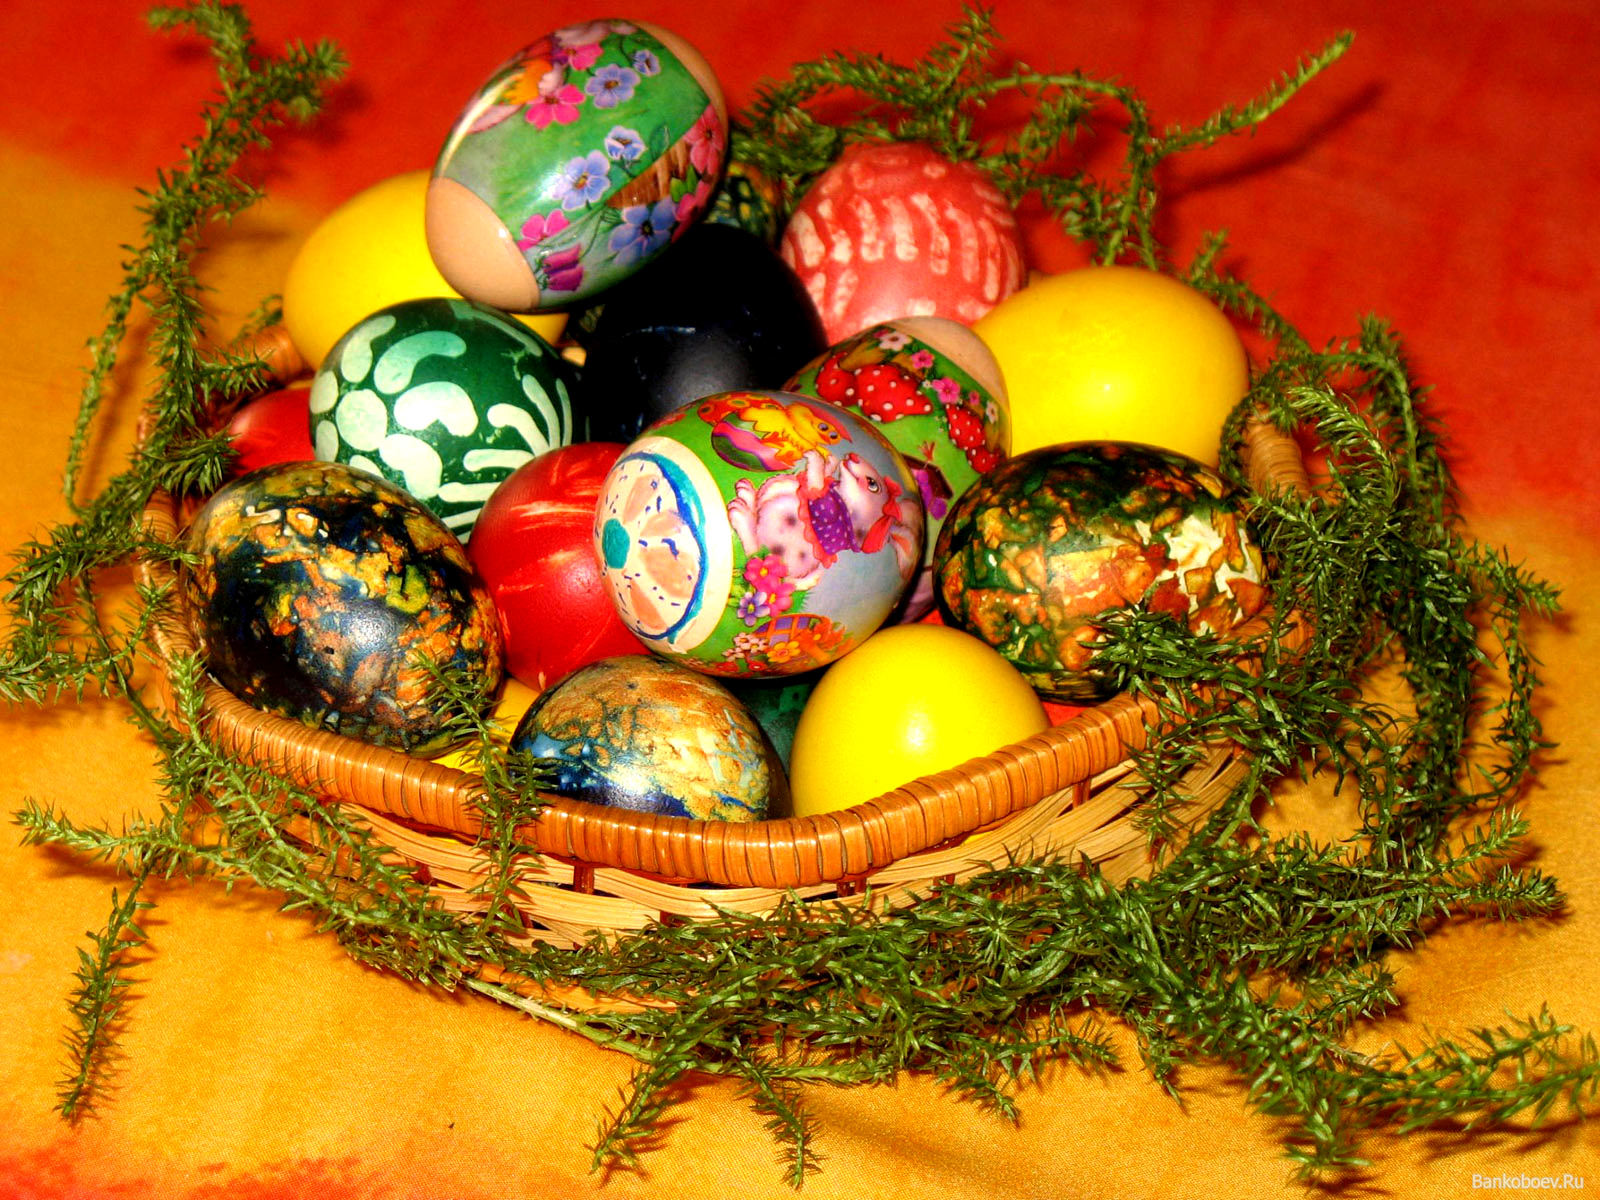 Easter,Background,Designs,Basket,Eggs